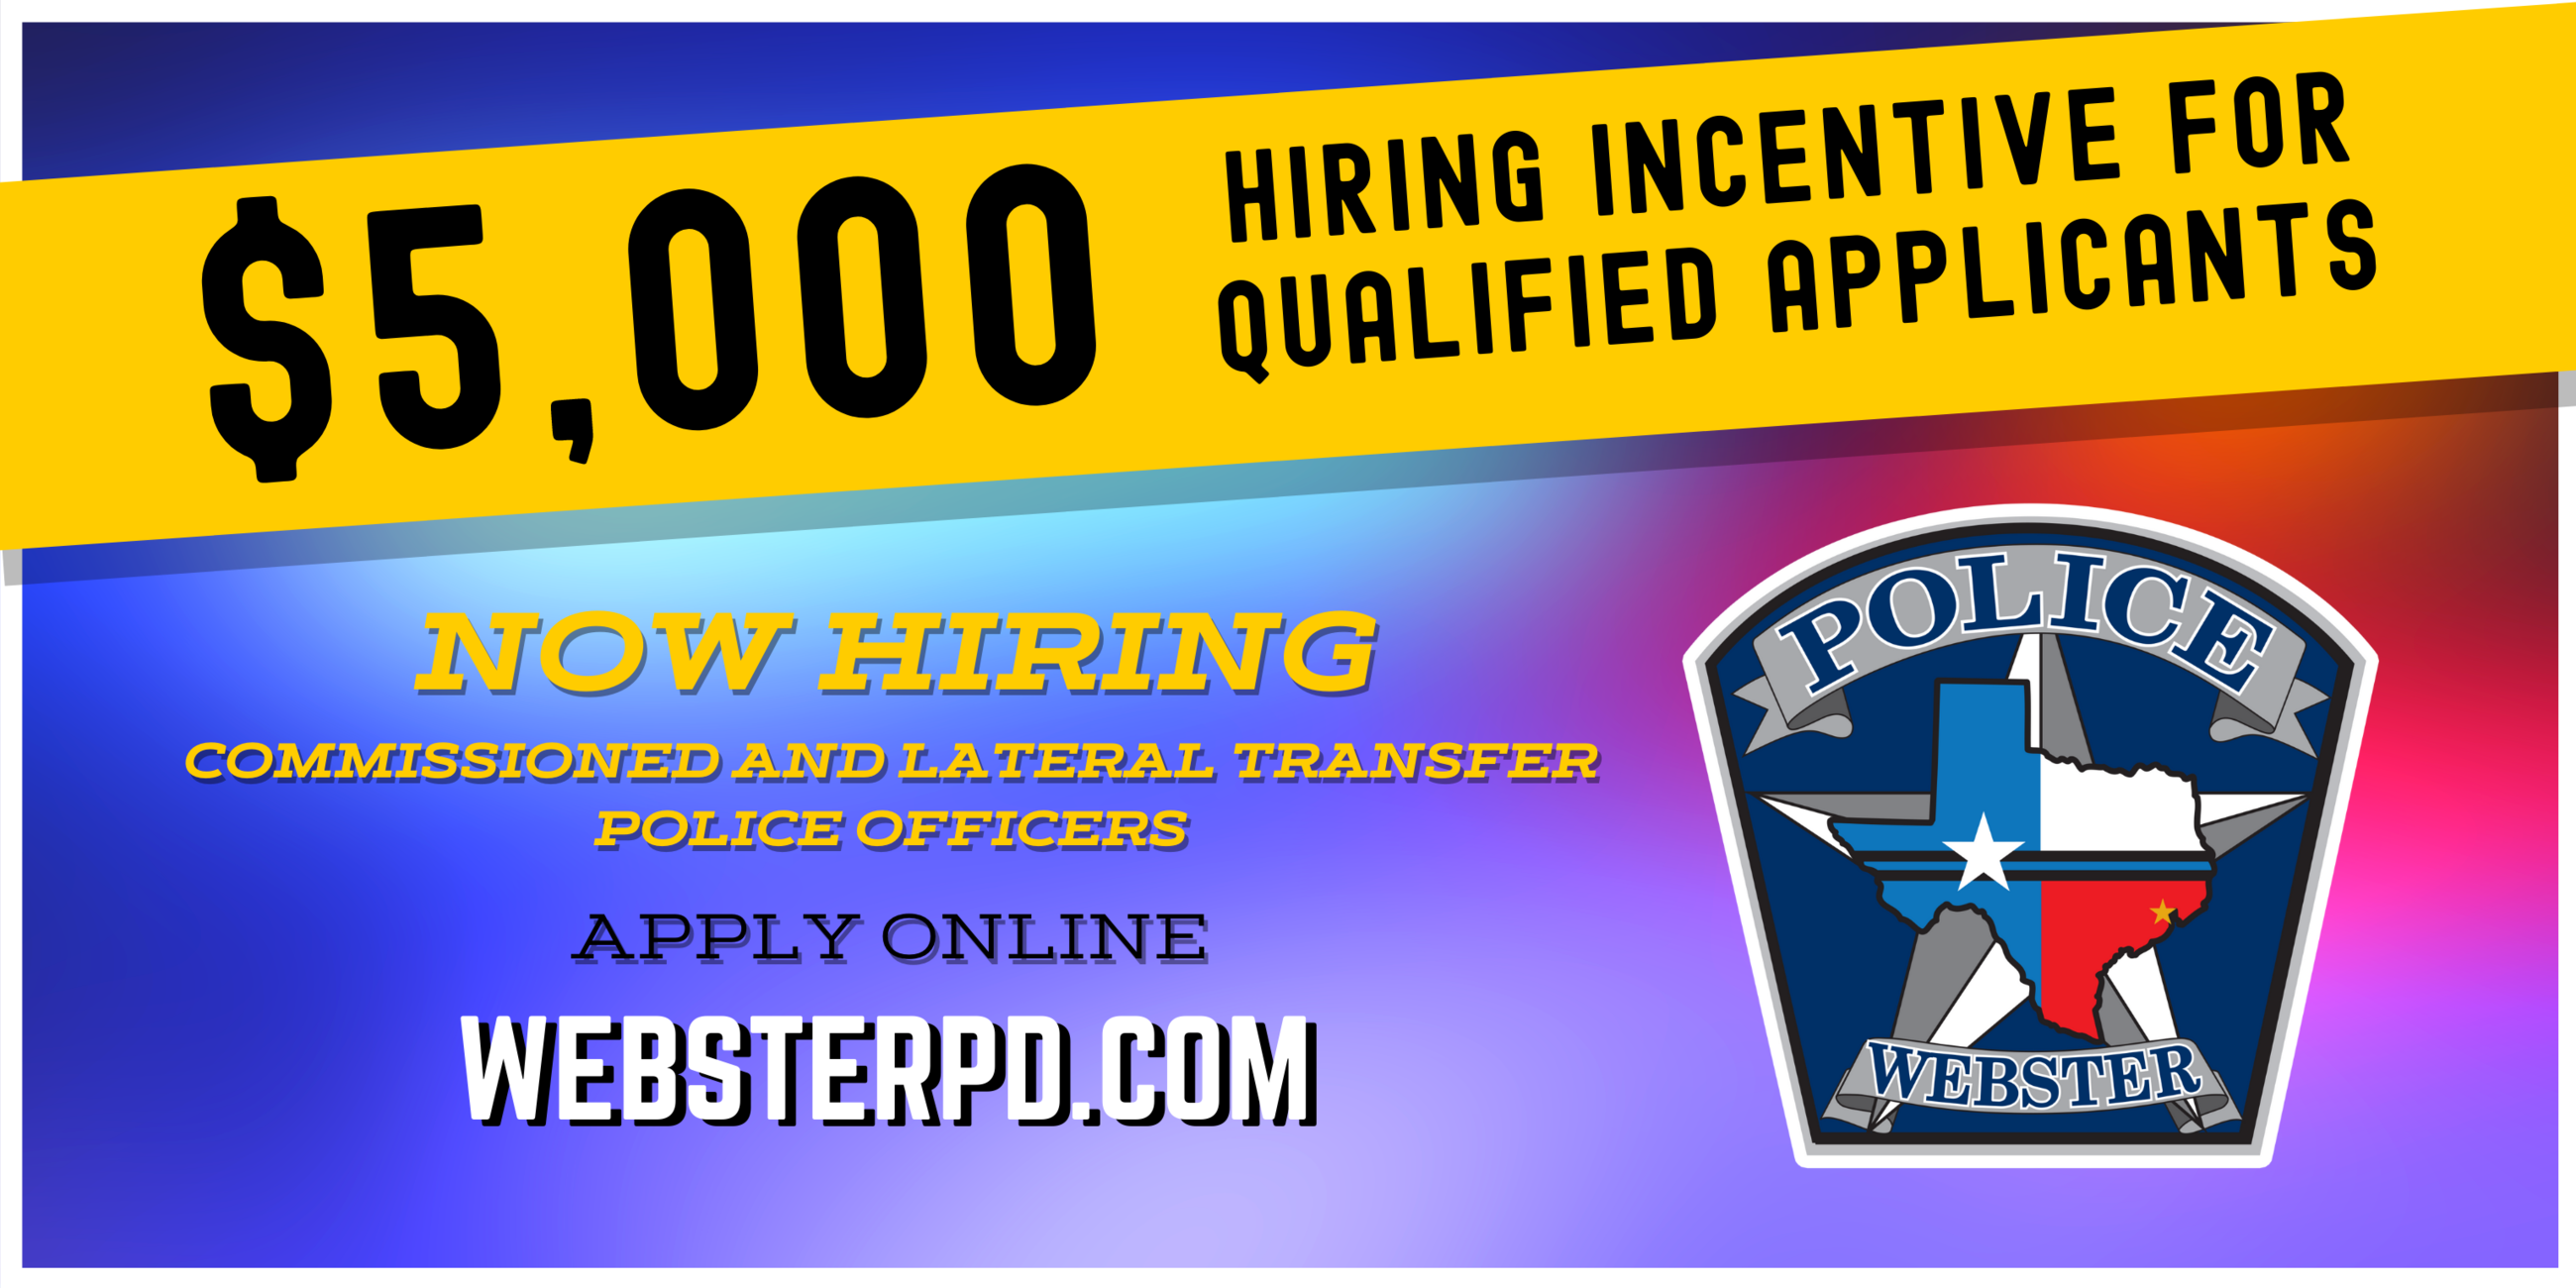 NOW HIRING Incentive PD-6